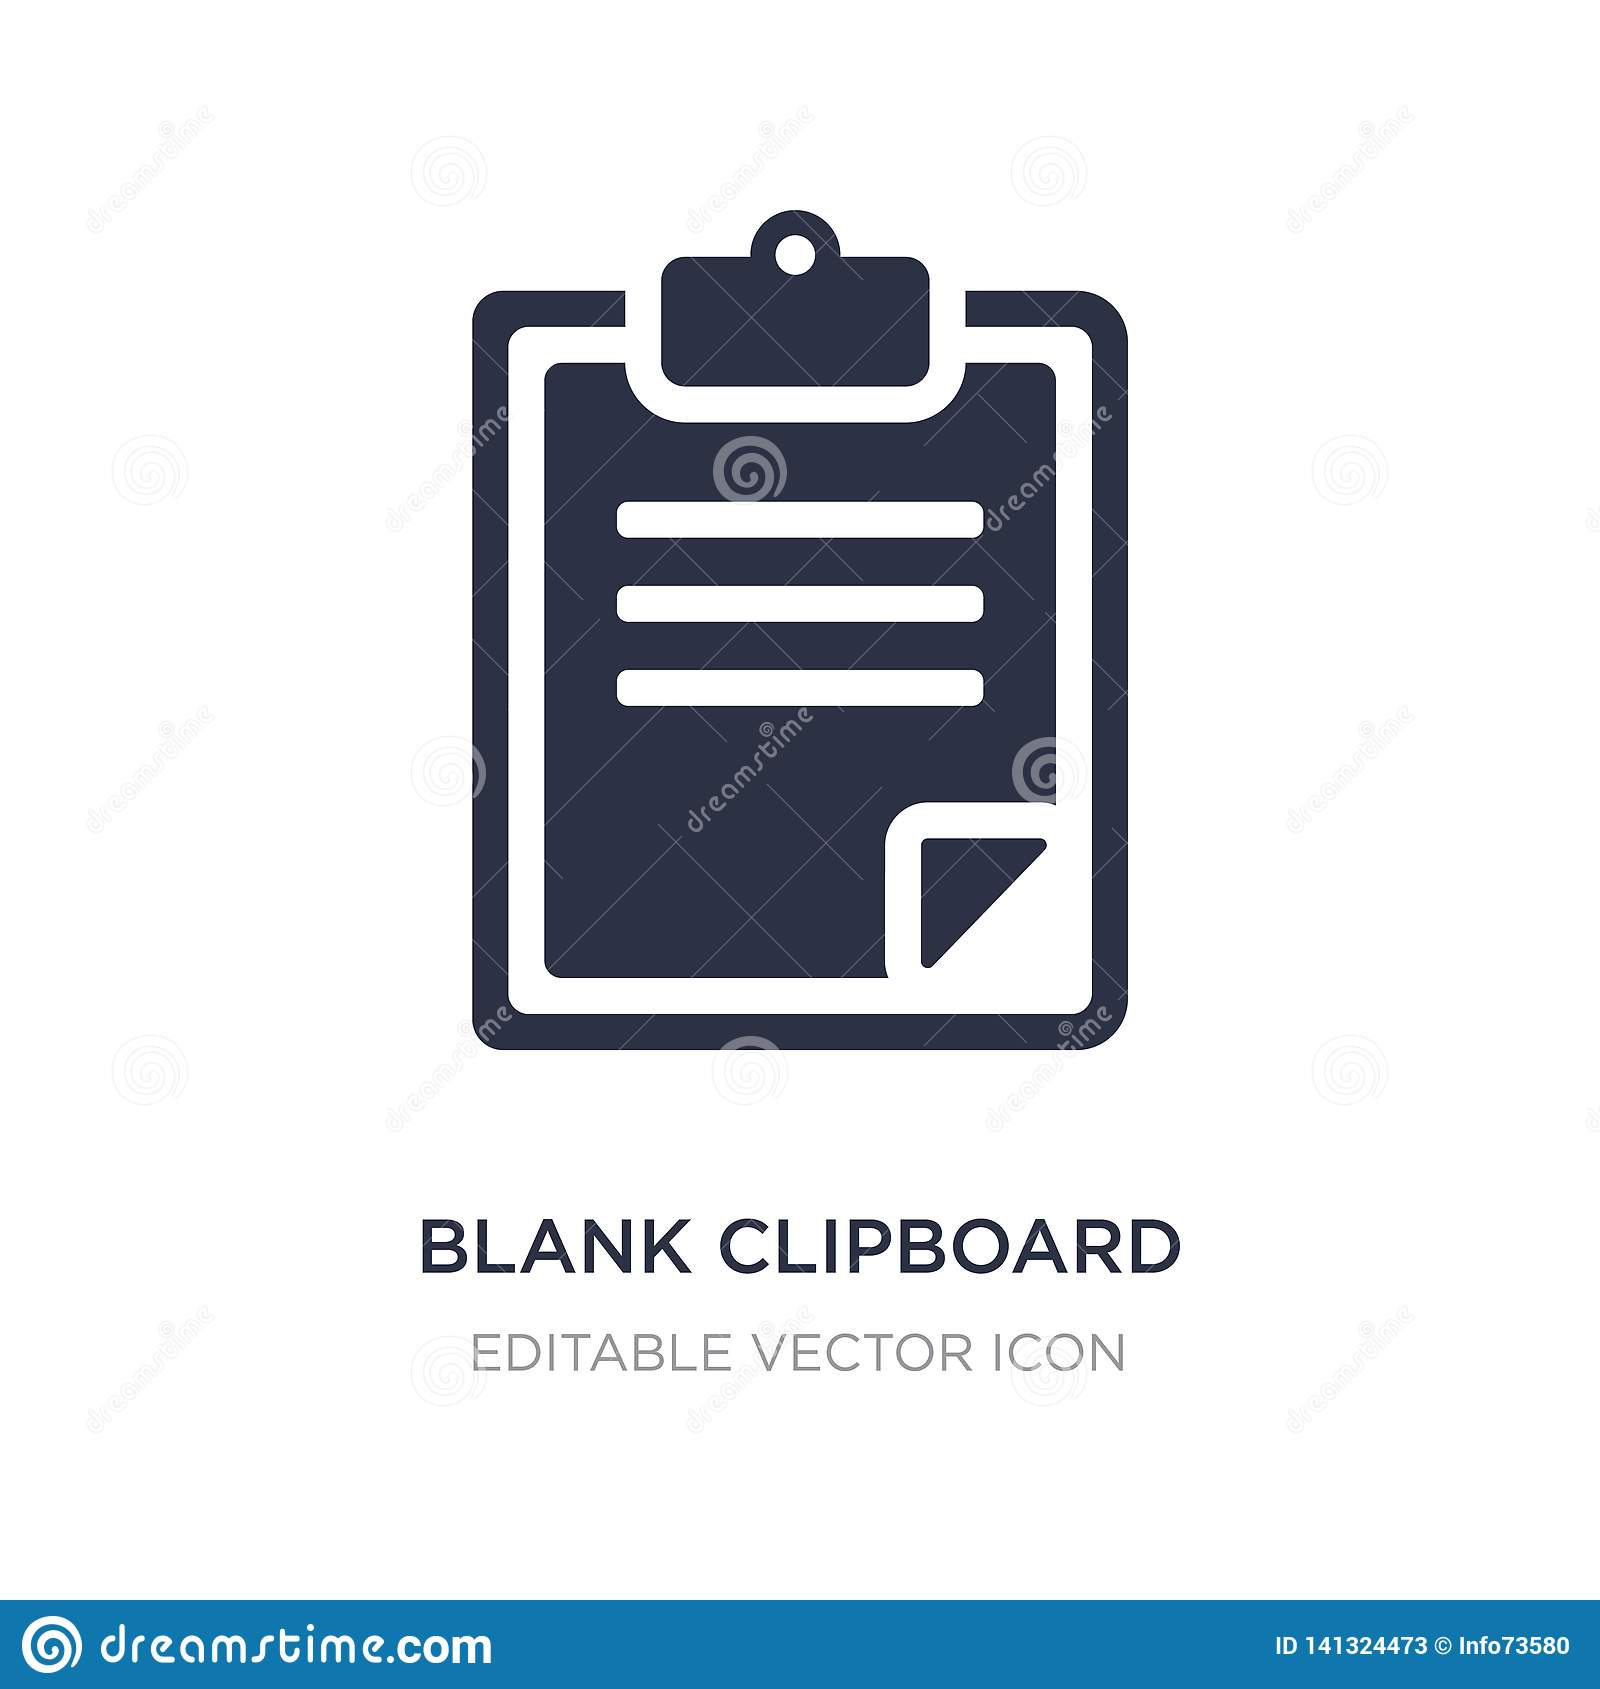 blank clipboard icon on white background. Simple element illustration from Education concept